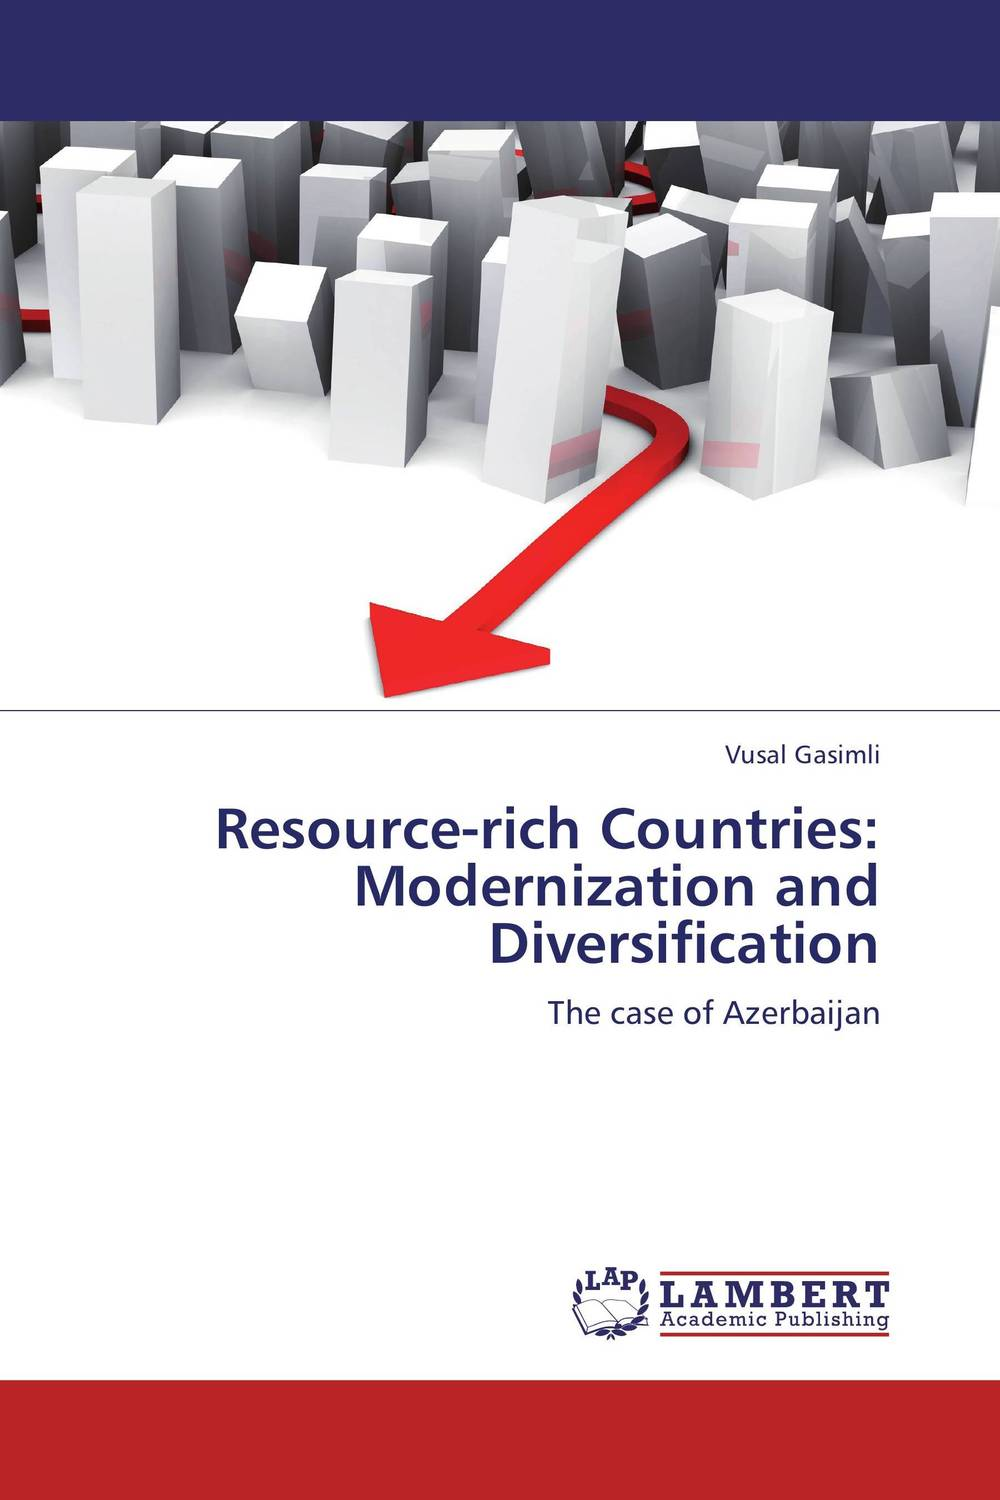 Resource-rich Countries: Modernization and Diversification